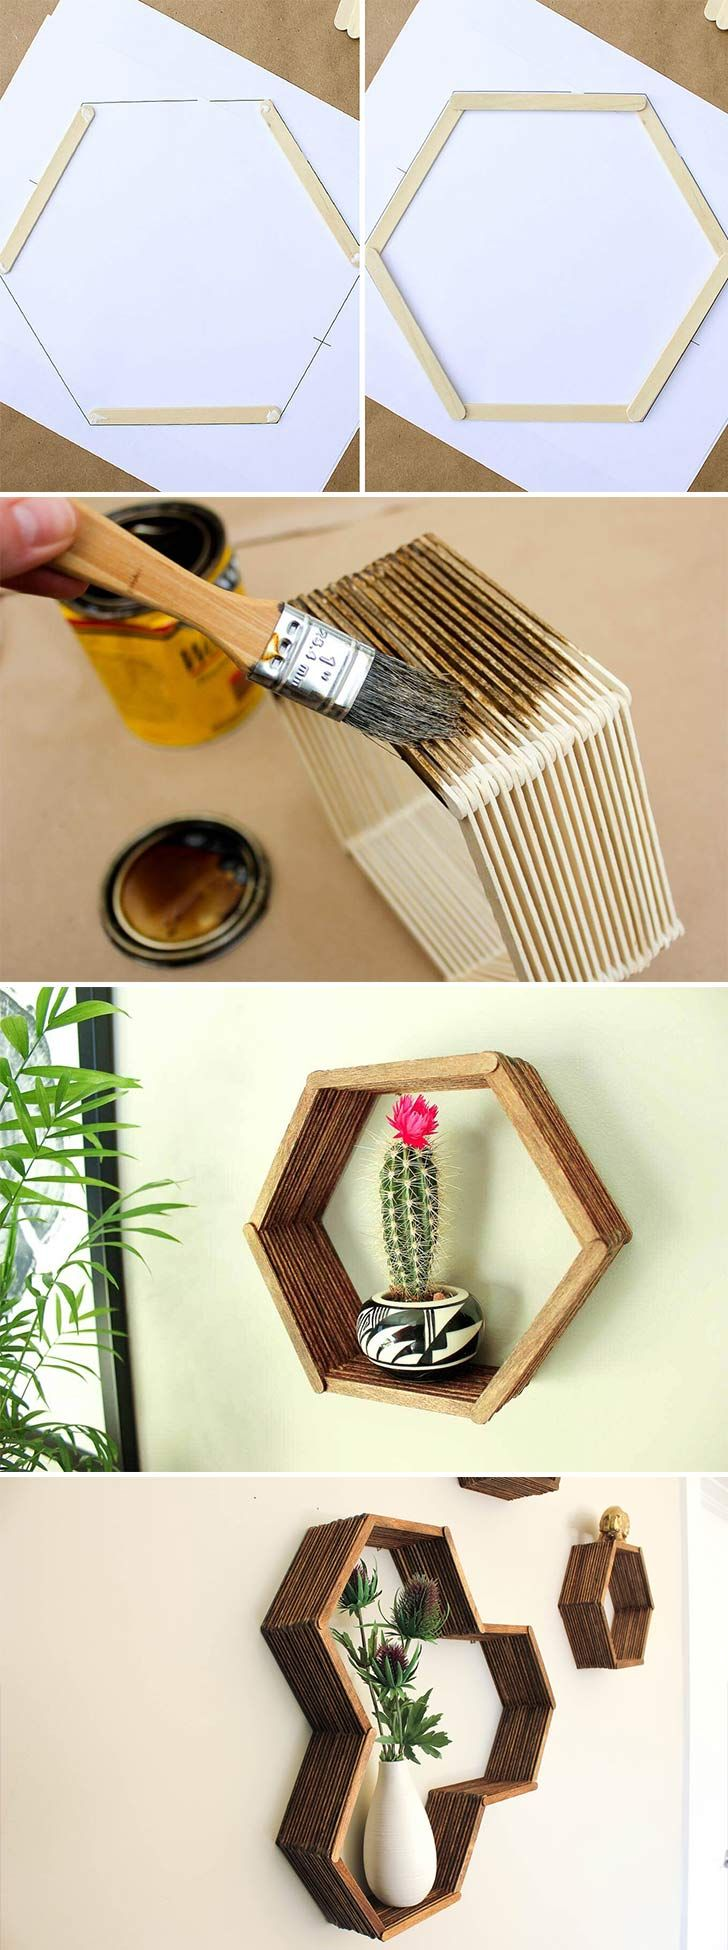 40 amazing diy home decor ideas that wont look diyed - Home Decor Pinterest